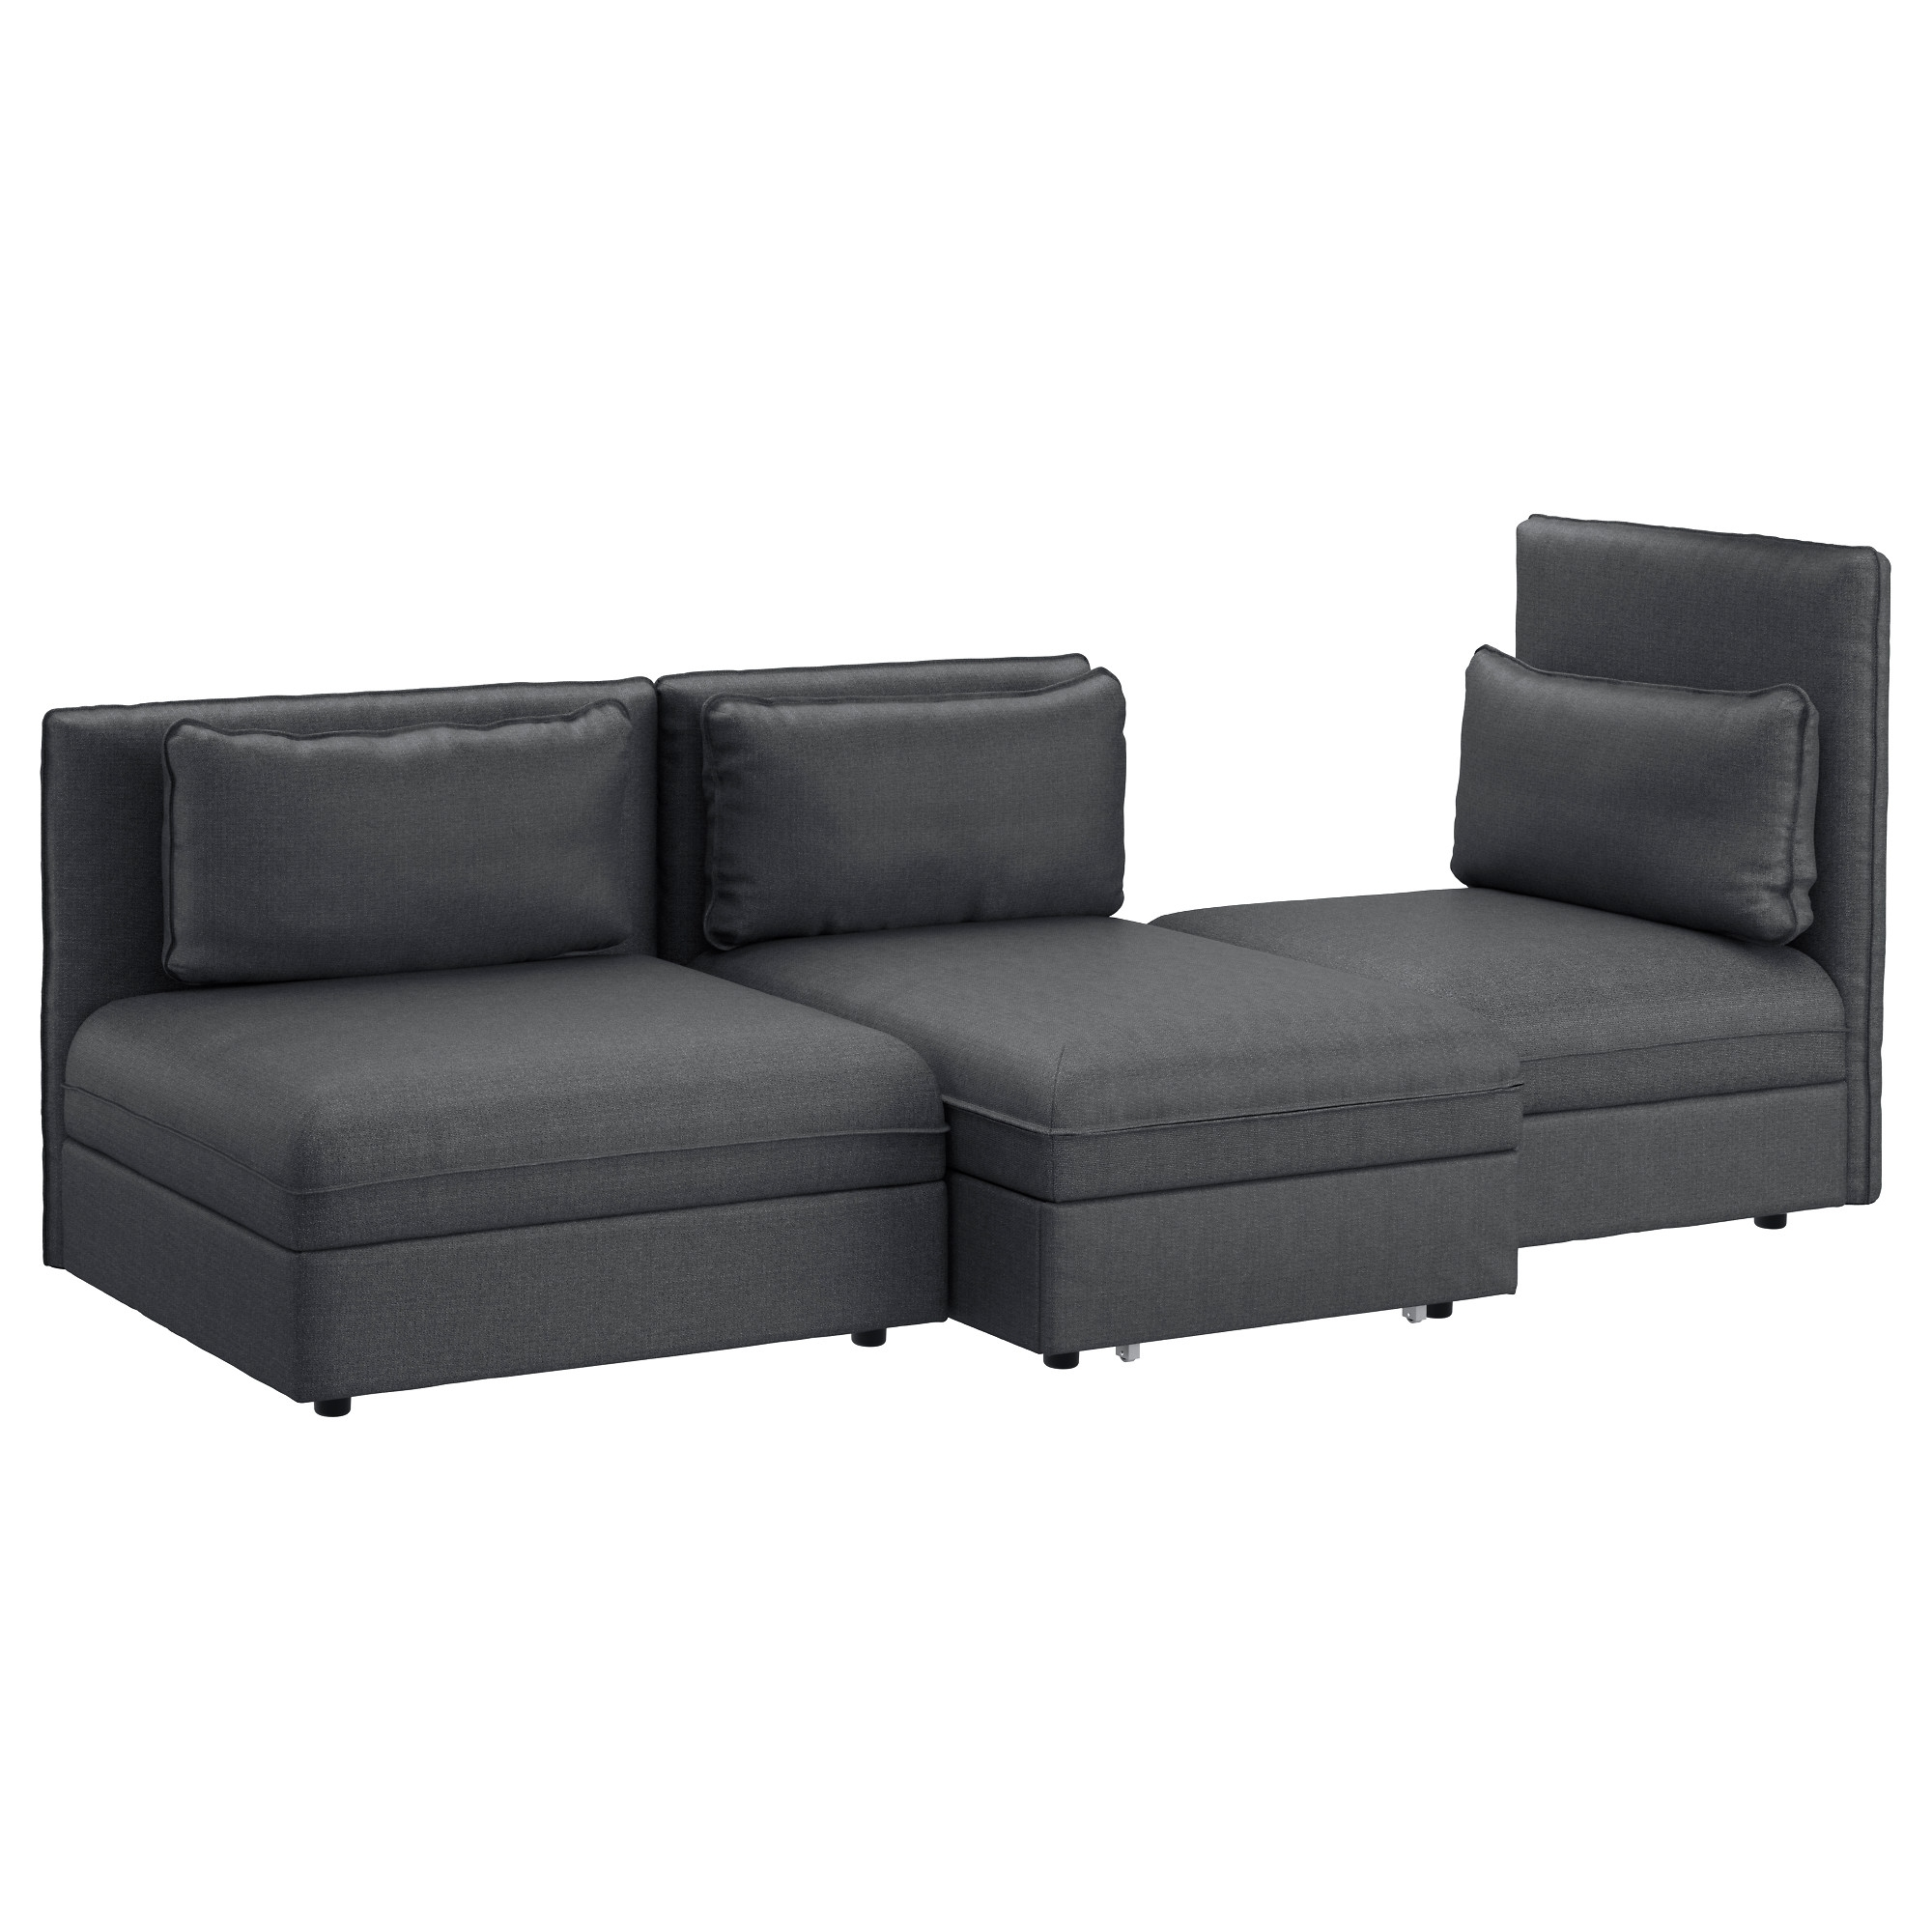 Vallentuna Sleeper Sectional, 3 Seat – Hillared Dark Gray – Ikea Inside Latest Ikea Sectional Sleeper Sofas (View 10 of 15)